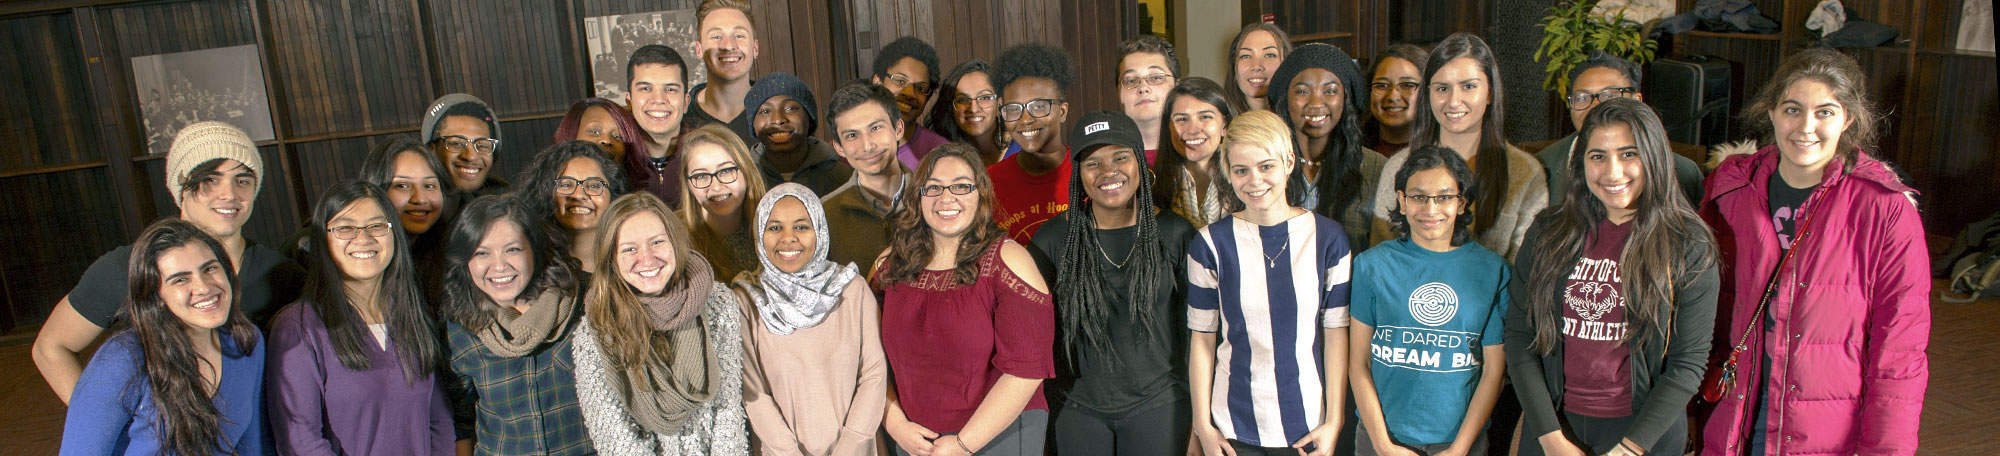 UChicago Odyssey students gather in the North Reading Room of the Cathey Learning Center in Harper Memorial Library.